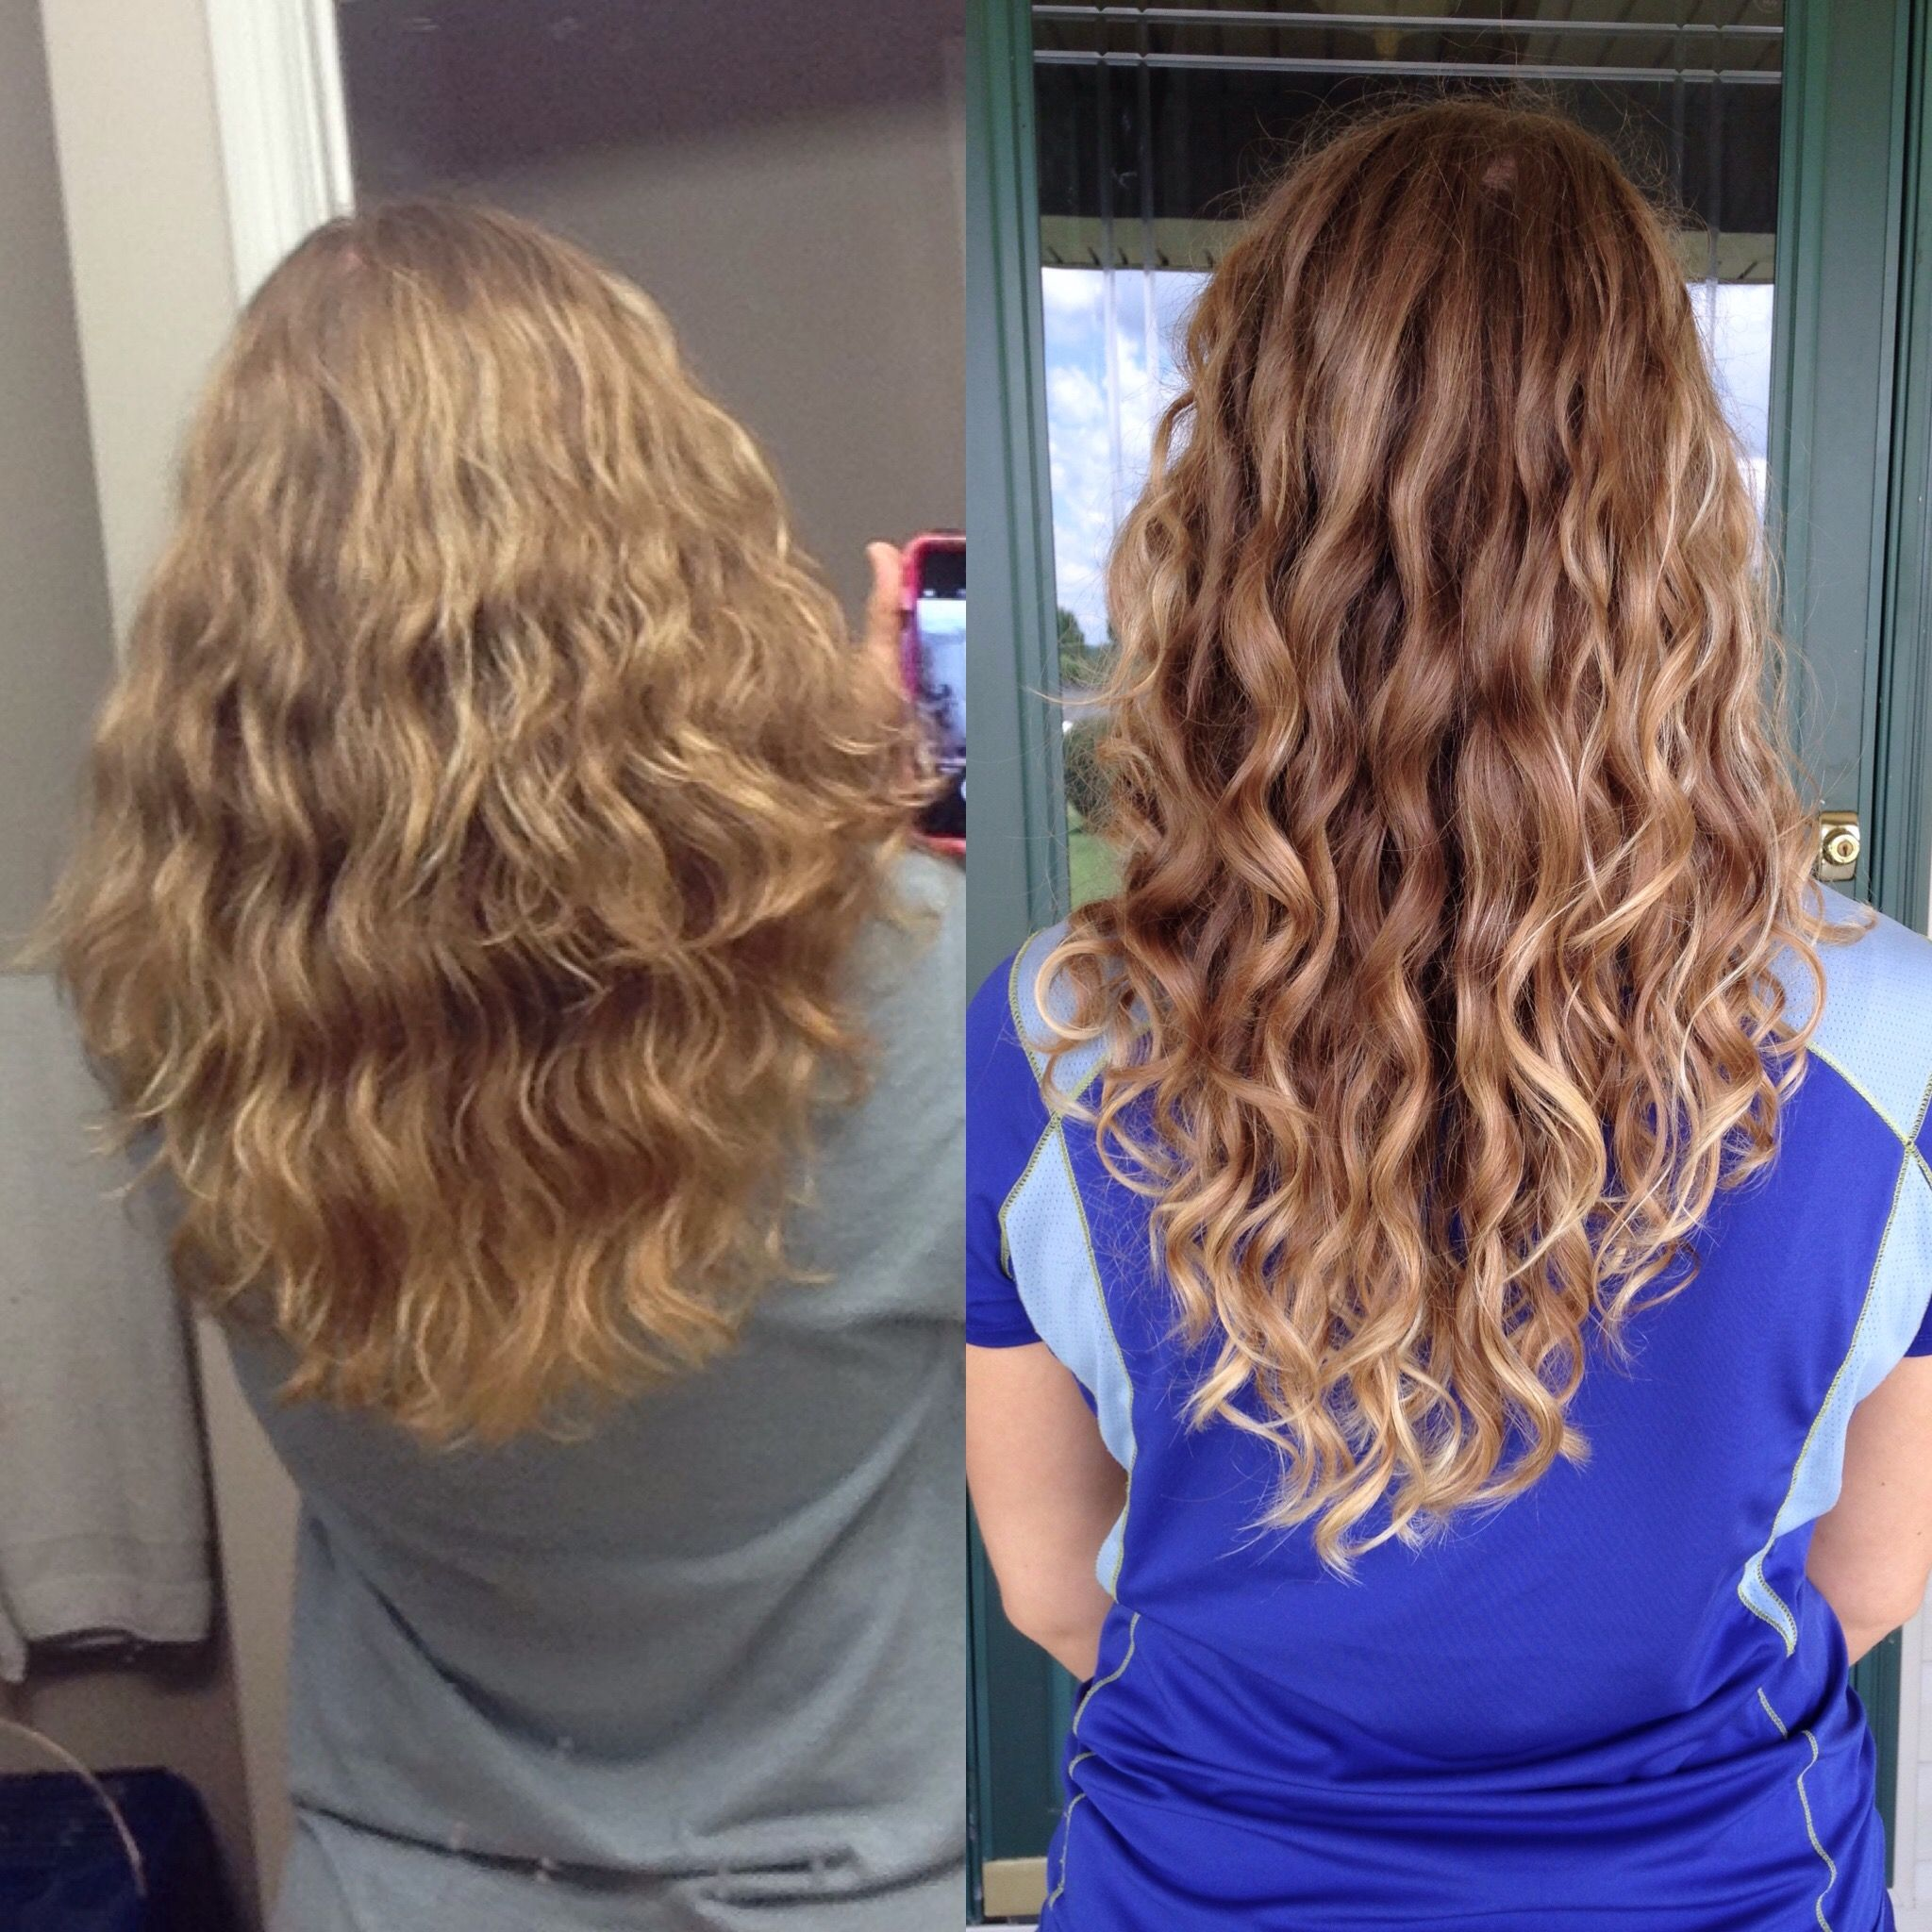 Curly Girl Method Before And After Curly Girl Method Permed Hairstyles Curly Girl